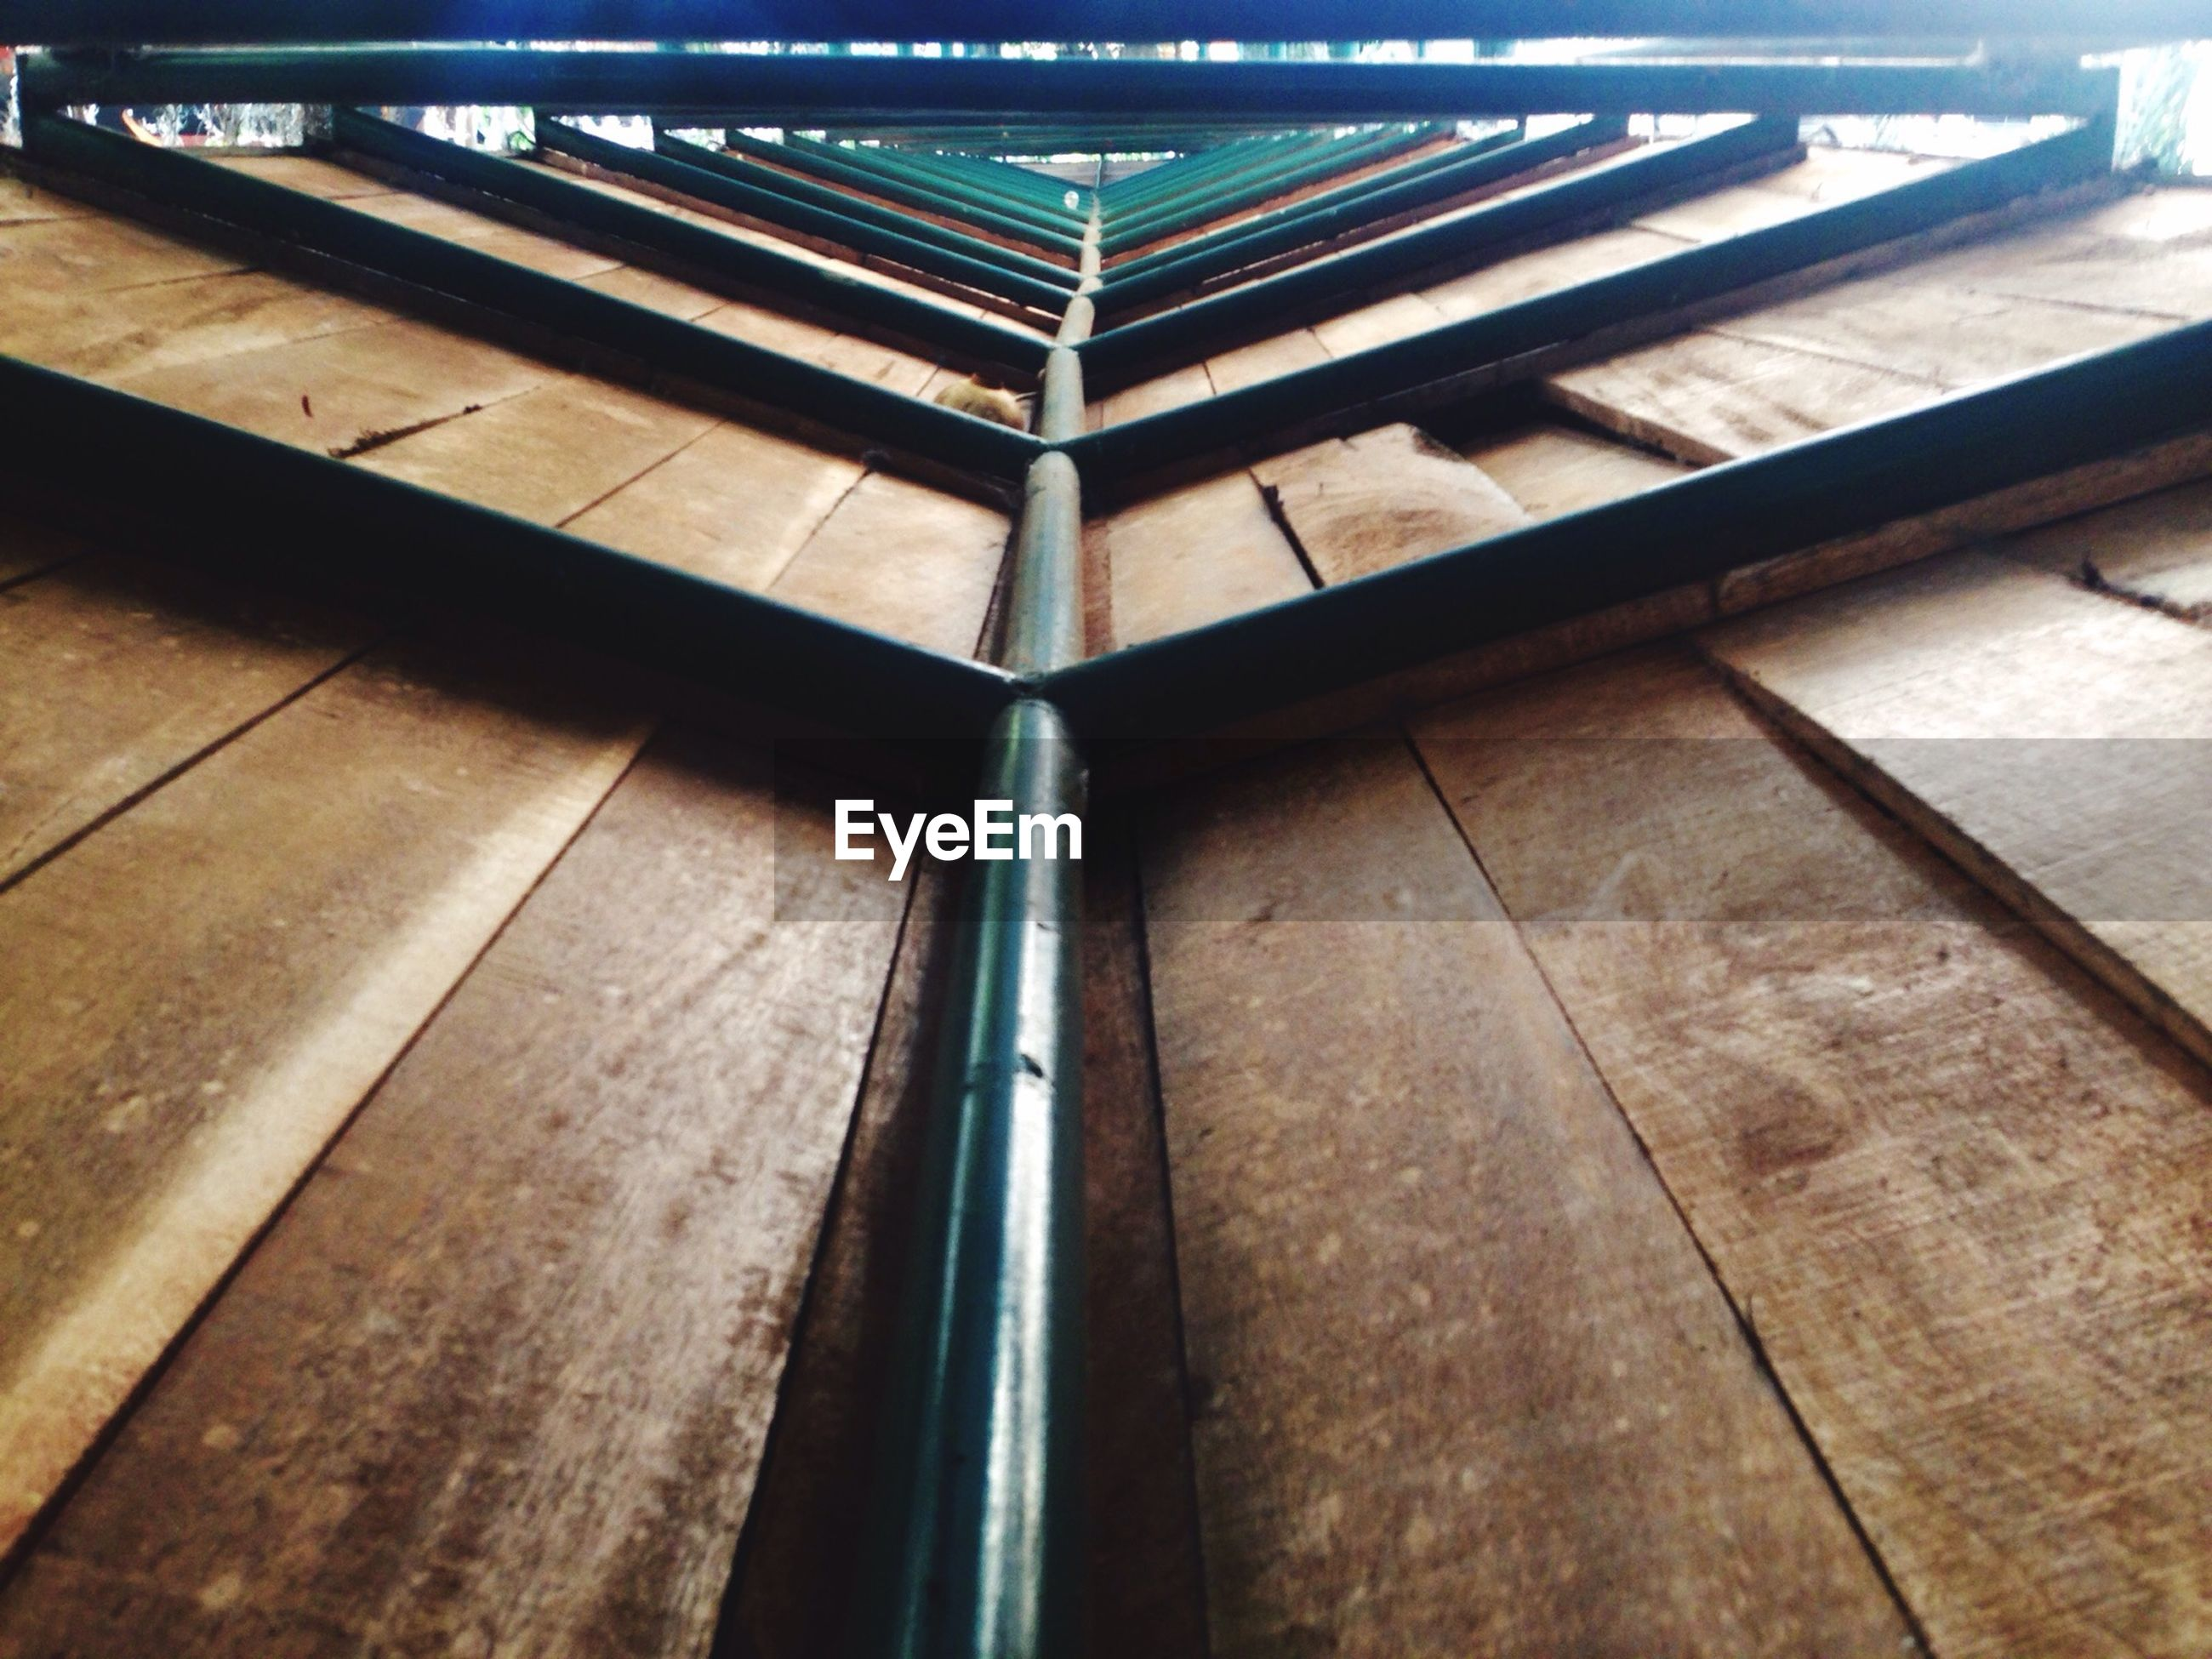 indoors, wood - material, ceiling, pattern, built structure, architecture, wooden, wood, full frame, low angle view, design, flooring, geometric shape, no people, backgrounds, high angle view, day, textured, directly below, sunlight